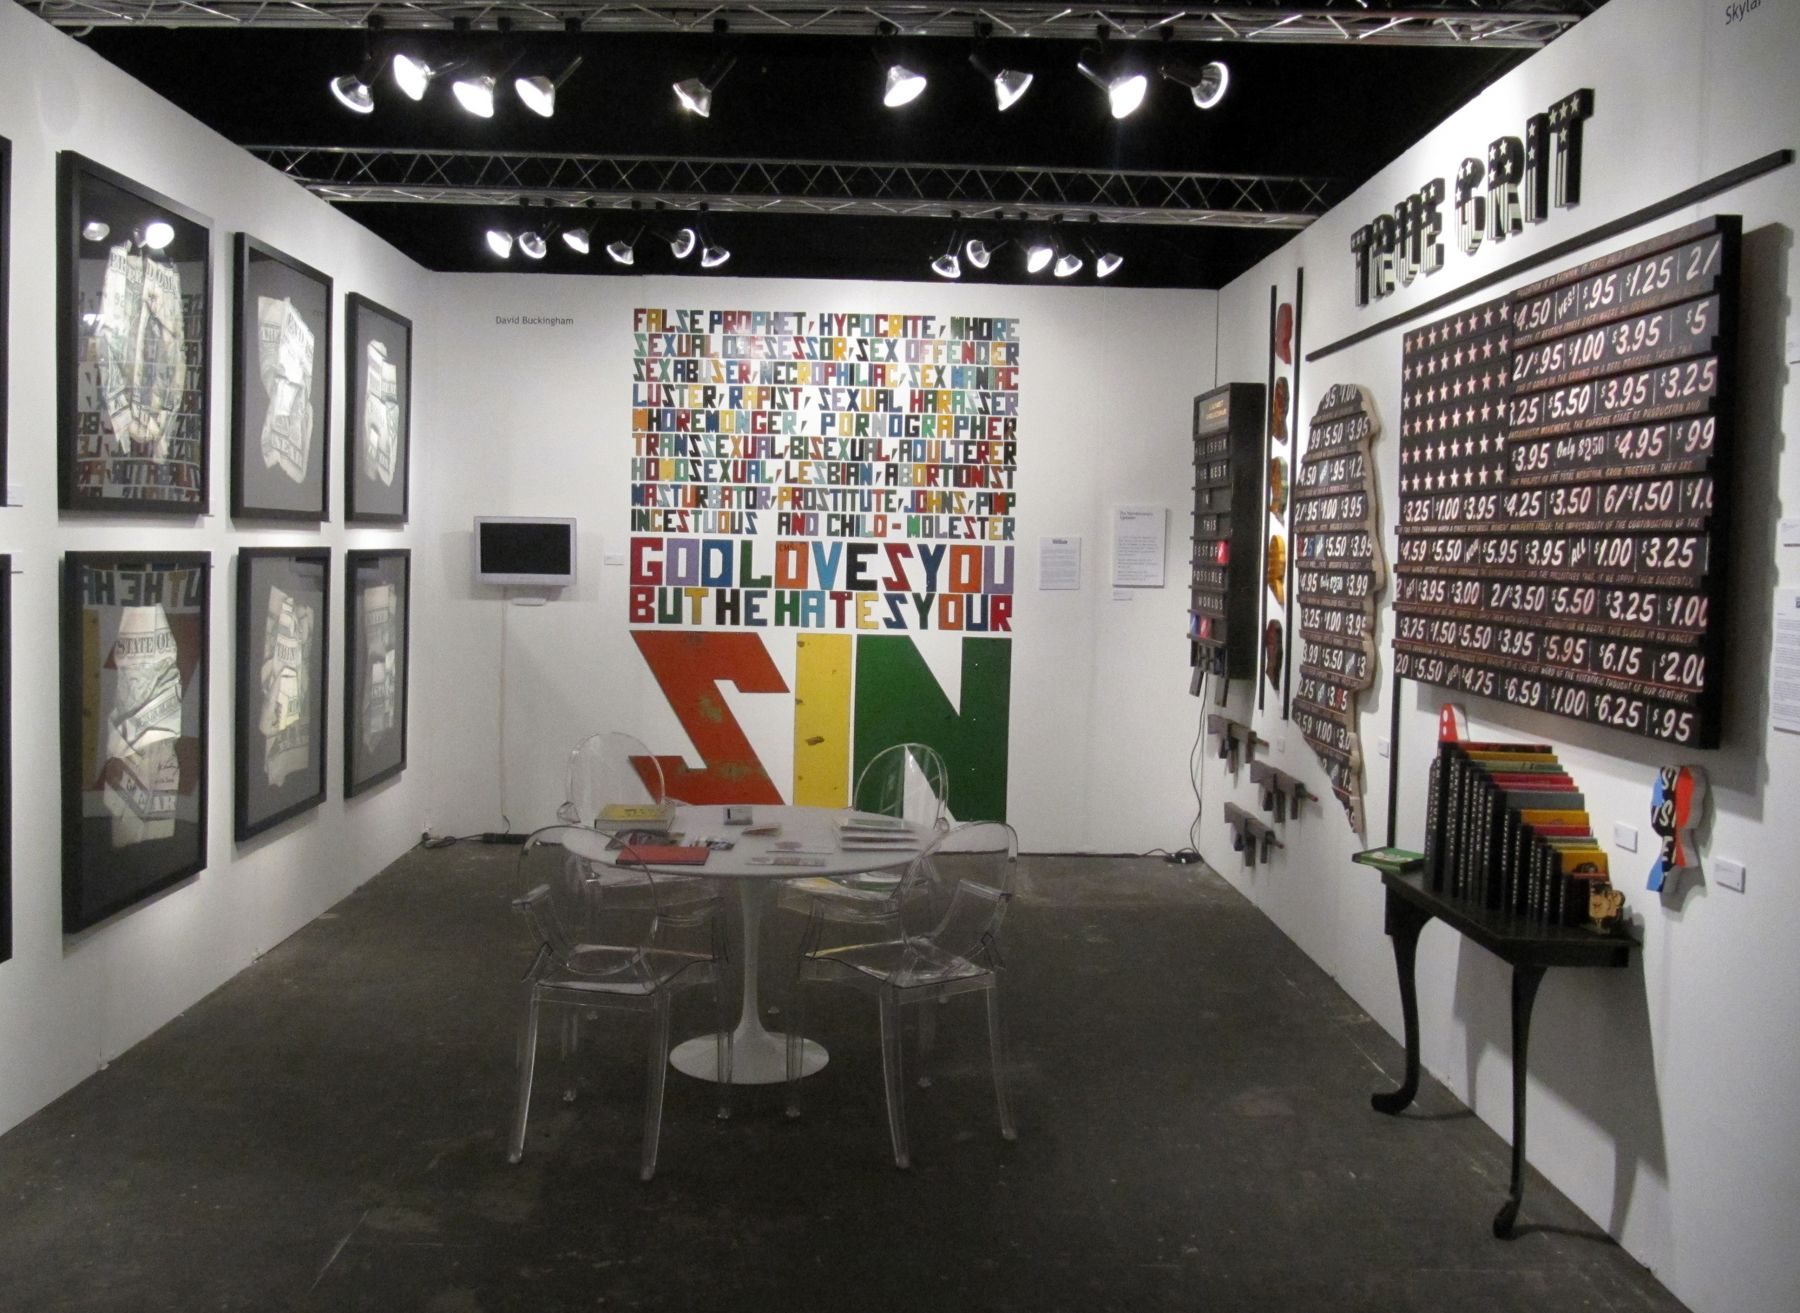 PULSE MIAMI 2010 III JONATHAN FERRARA GALLERY booth E-300, [Installation View]